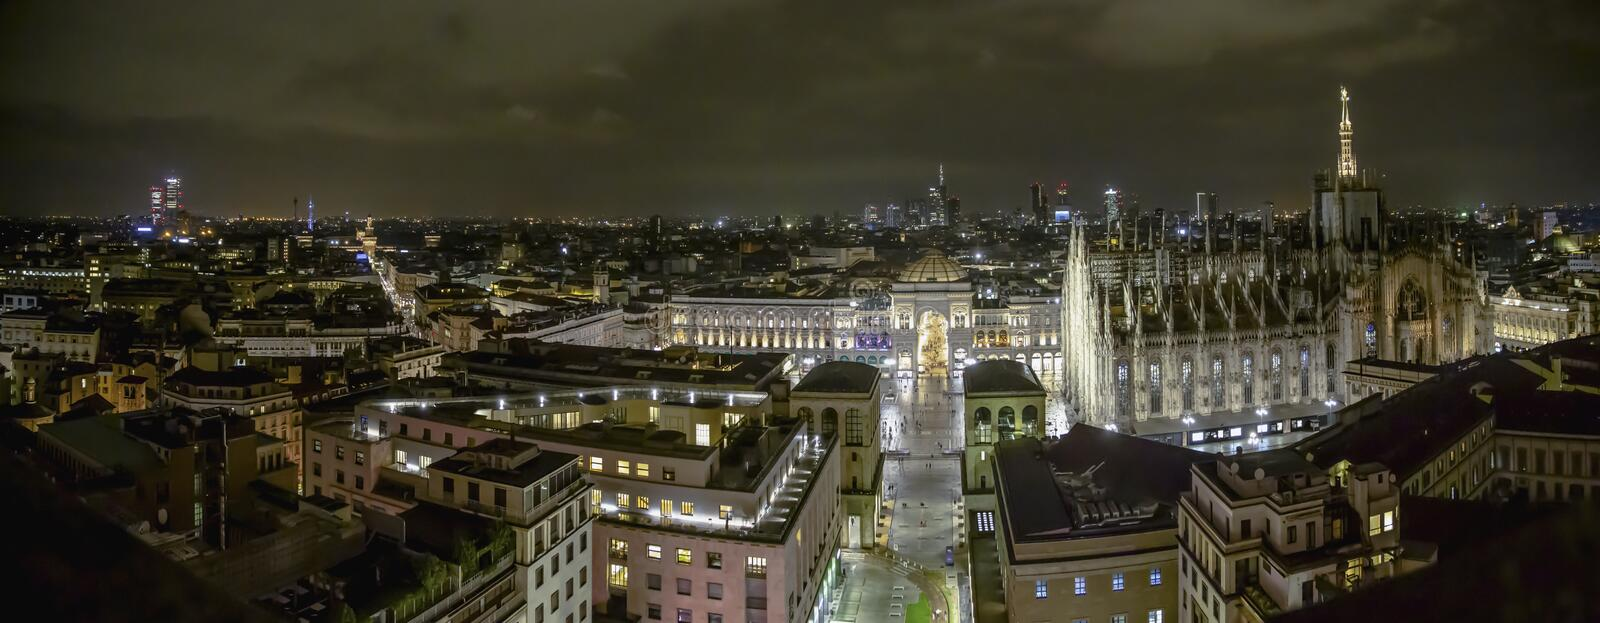 Milano, Italy - 08 31 2018: Duomo di Milano - galleria Vittorio Emanuele, aerial view - night. High resolution panorama stock images